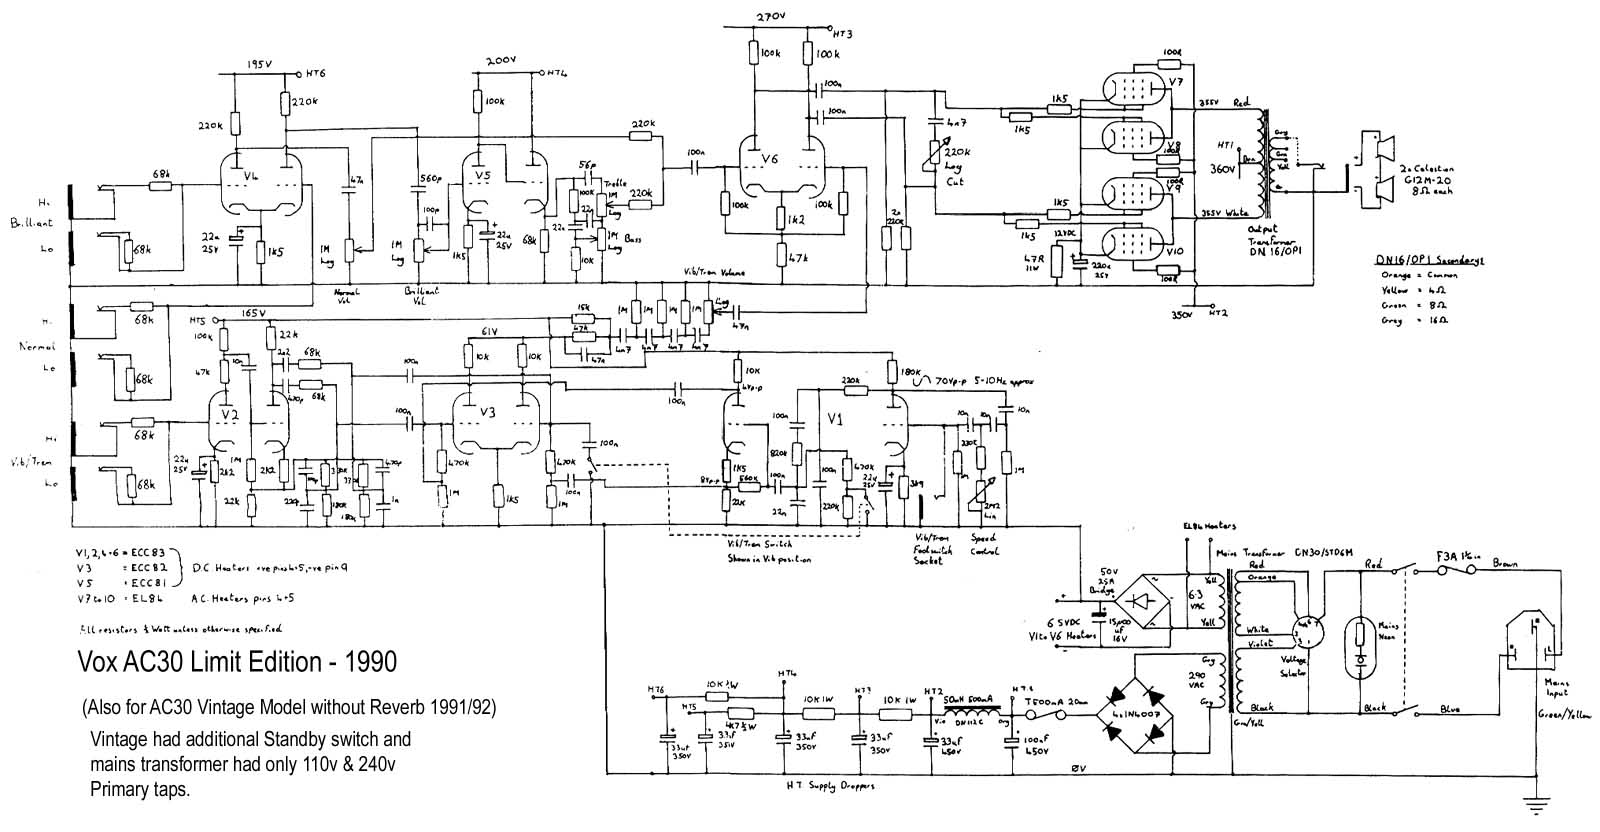 Vox Vintage Circuit Diagrams Guitar Circuits And Schematics Fuzzi Amps Other Effects Download Diagram